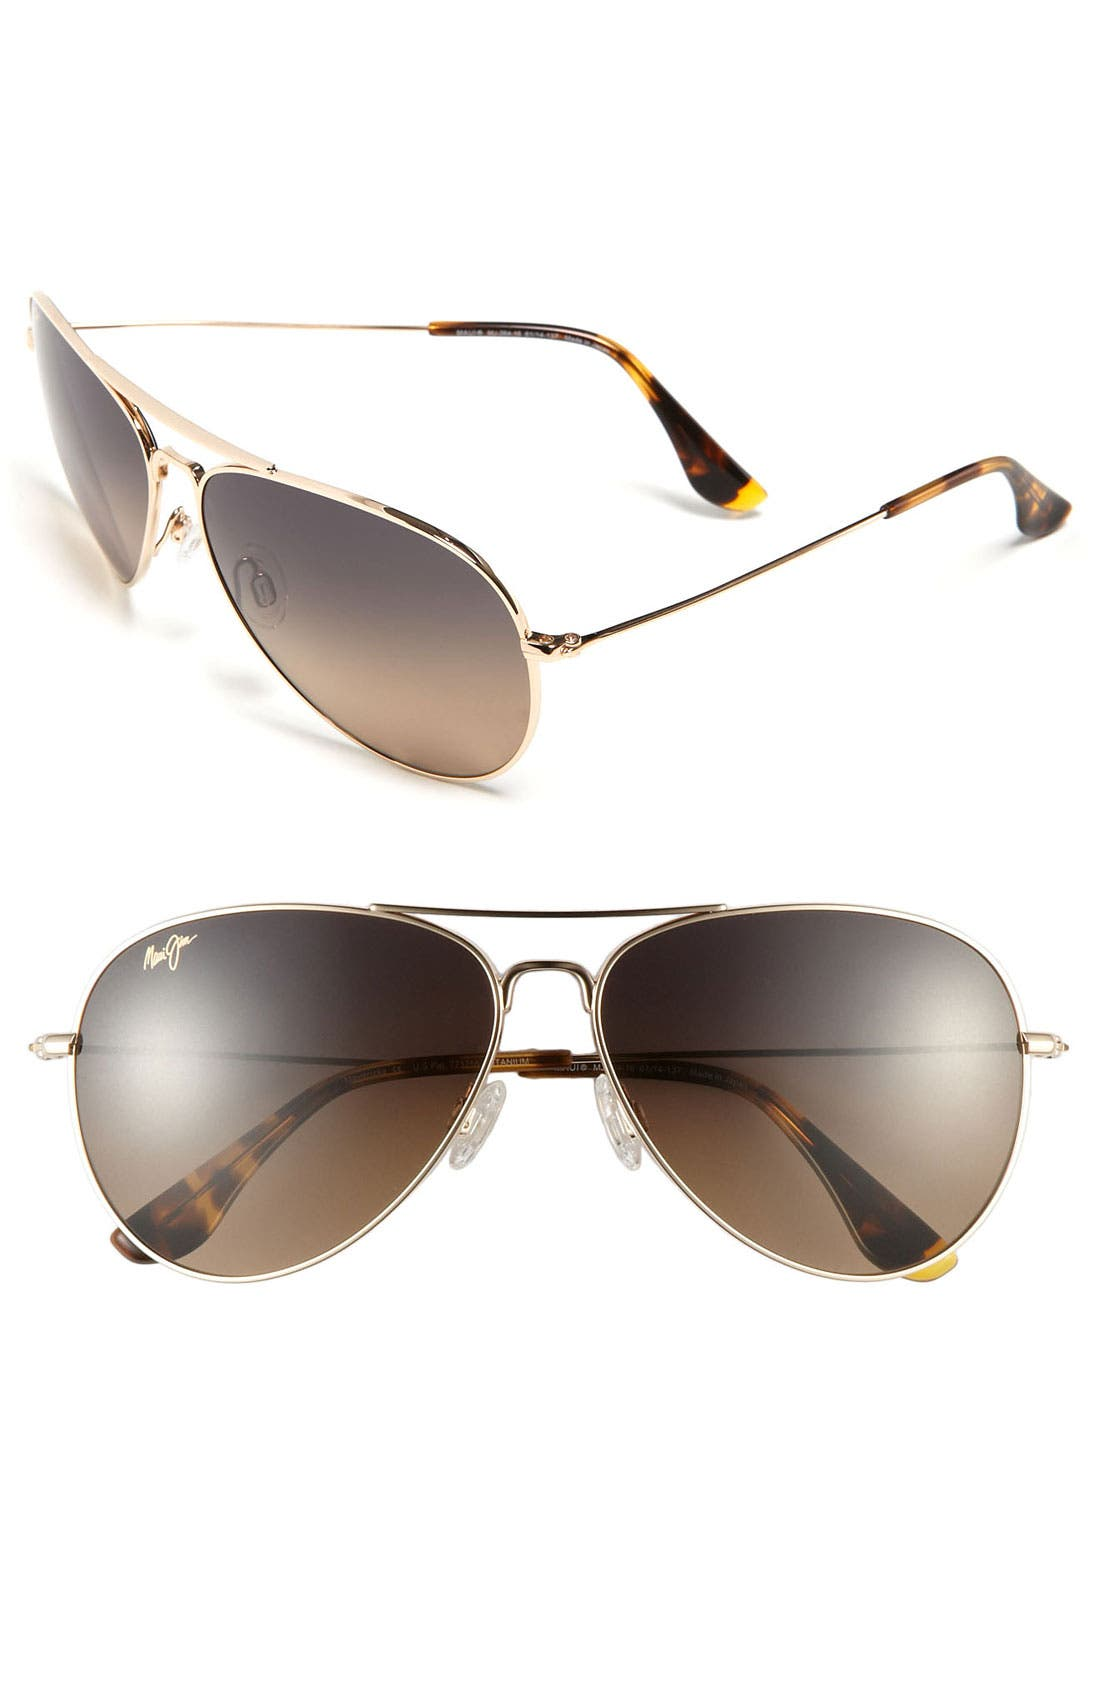 Mavericks 61mm PolarizedPlus2<sup>®</sup> Aviator Sunglasses,                             Main thumbnail 1, color,                             GOLD/ BRONZE